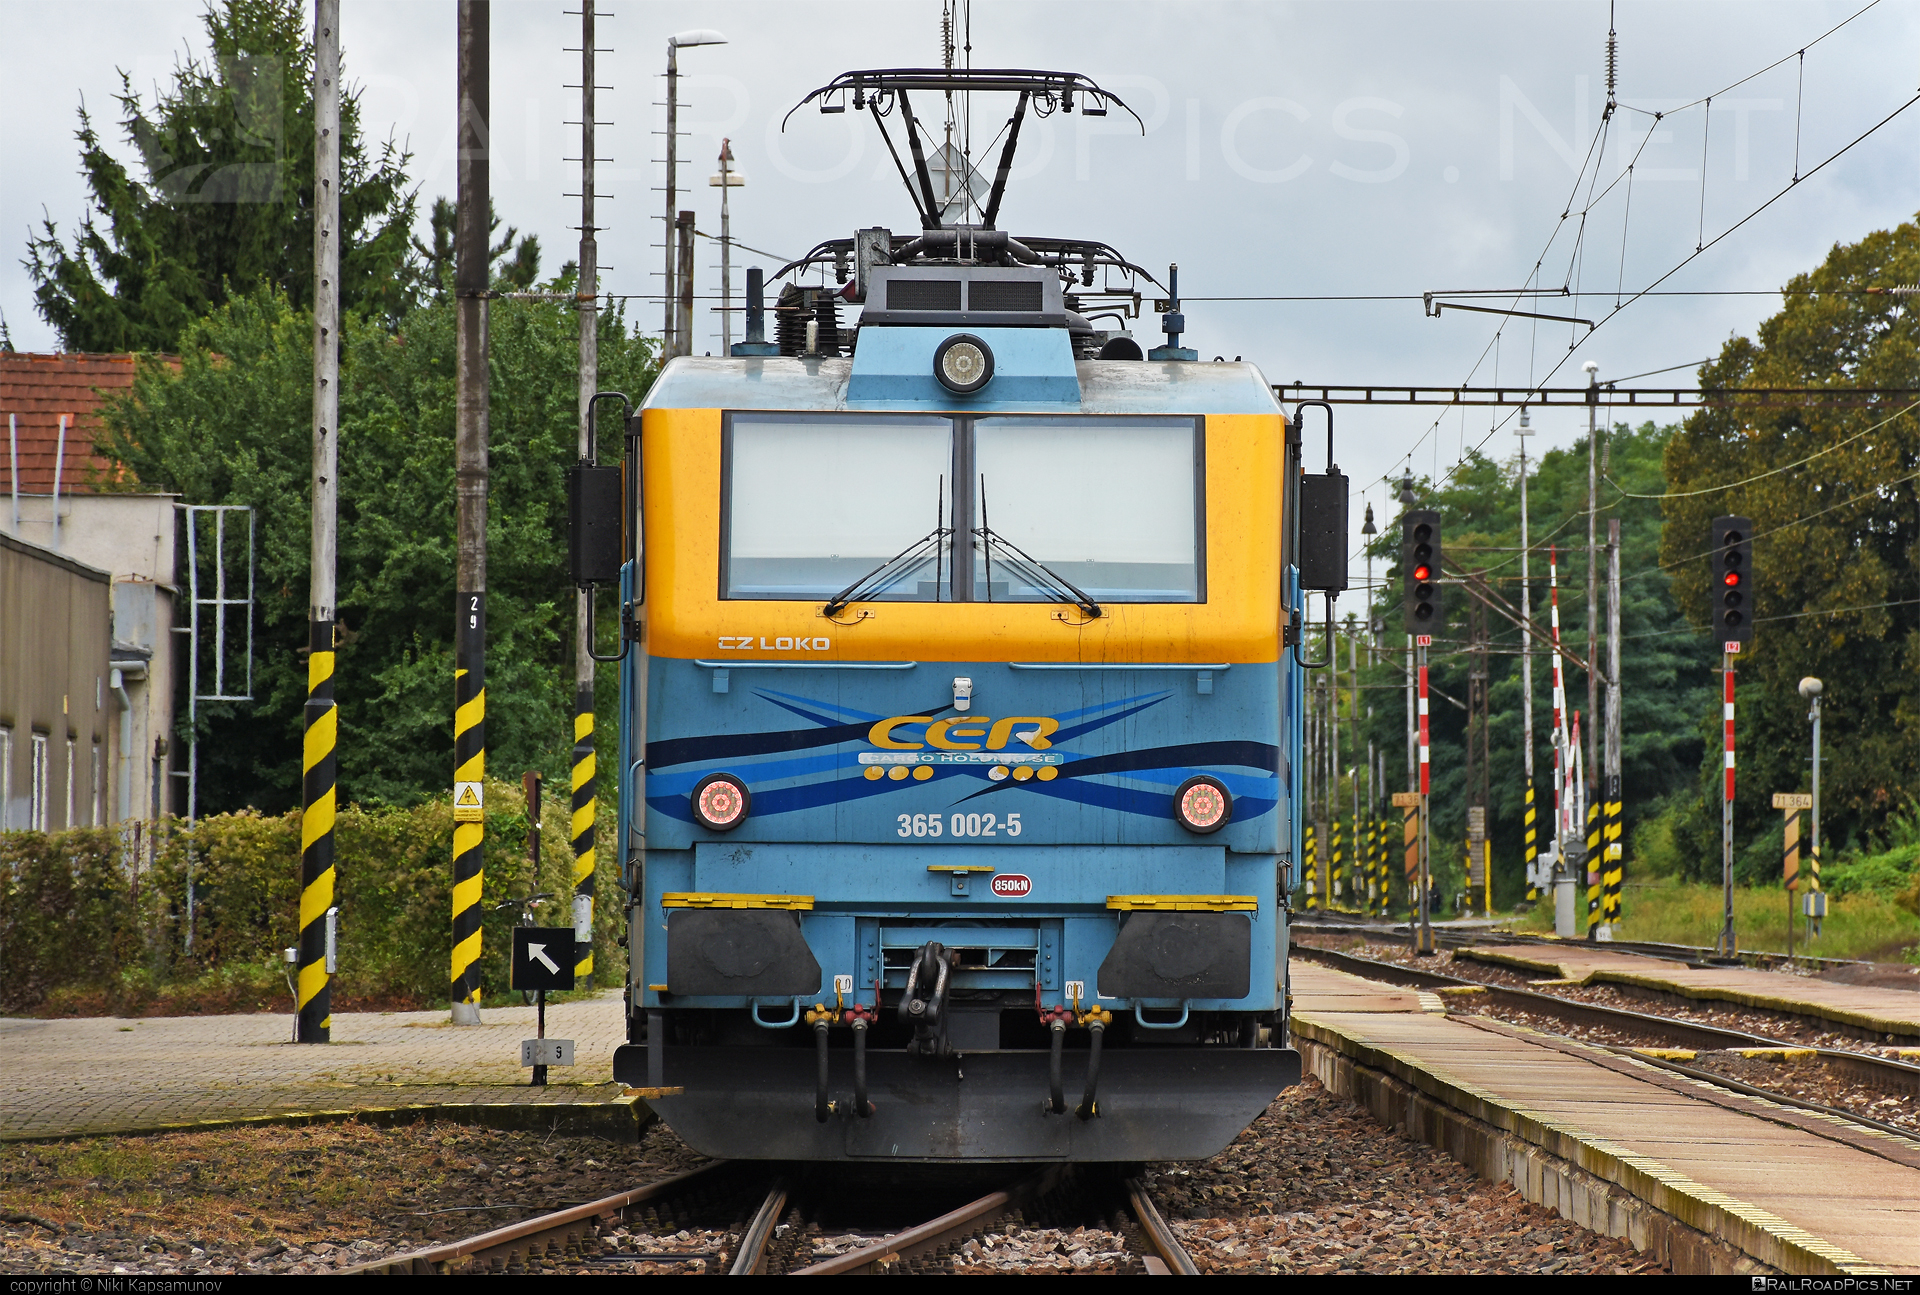 CZ LOKO EffiLiner 3000 - 365 002-5 operated by CER Slovakia a.s. #belgicanka #cer #cersk #cerslovakia #cerslovakiaas #czloko #czlokoas #effiliner #effiliner3000 #sncb12 #sncbclass12